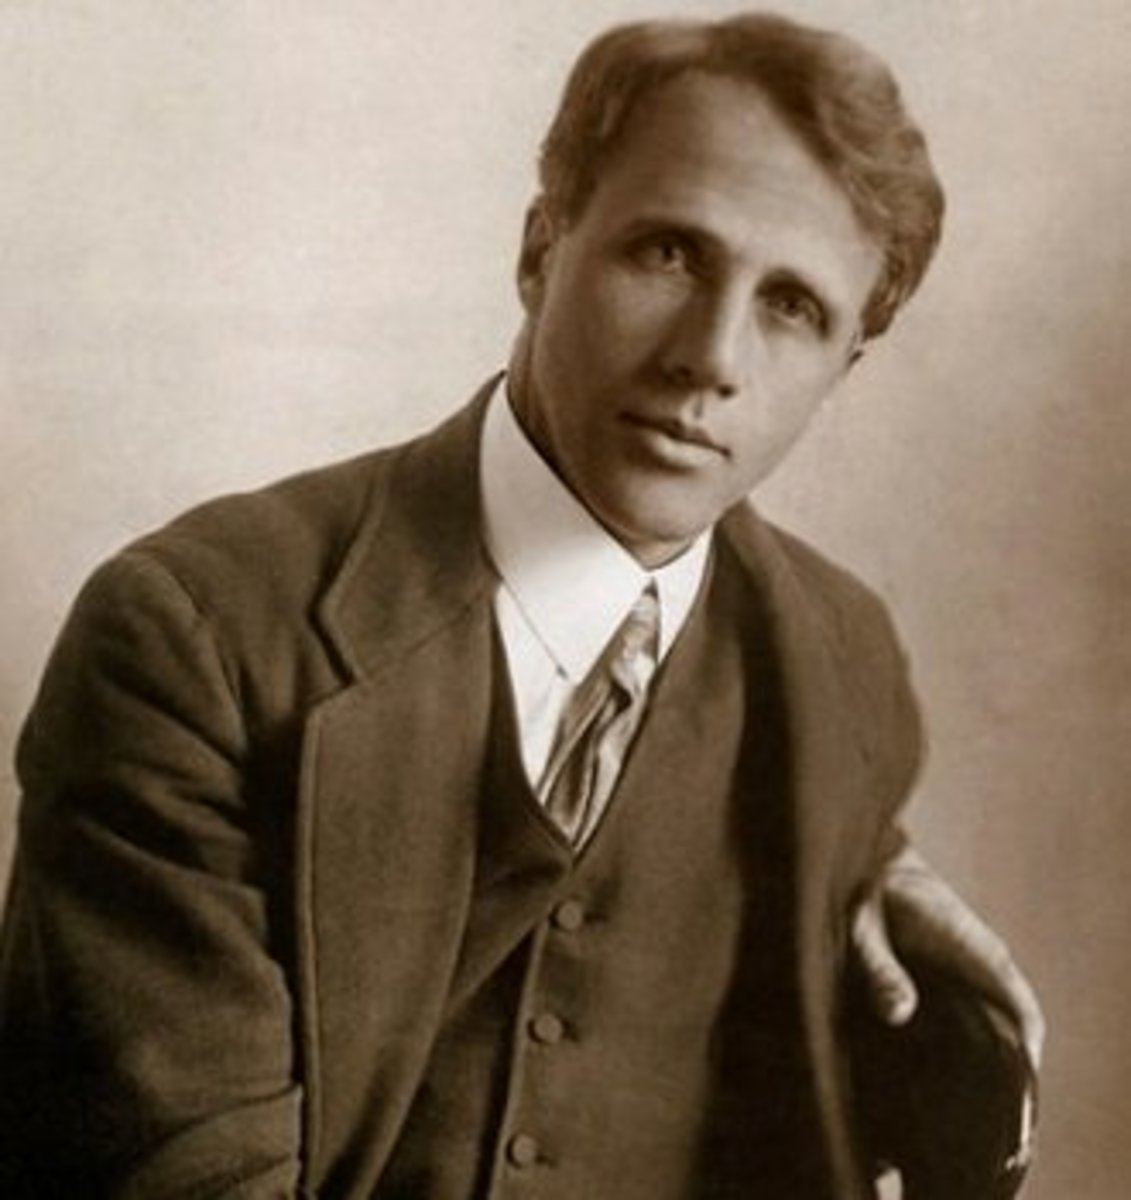 The Gathering of Thoughts and Flowers: An Explication of the Robert Frost Poem